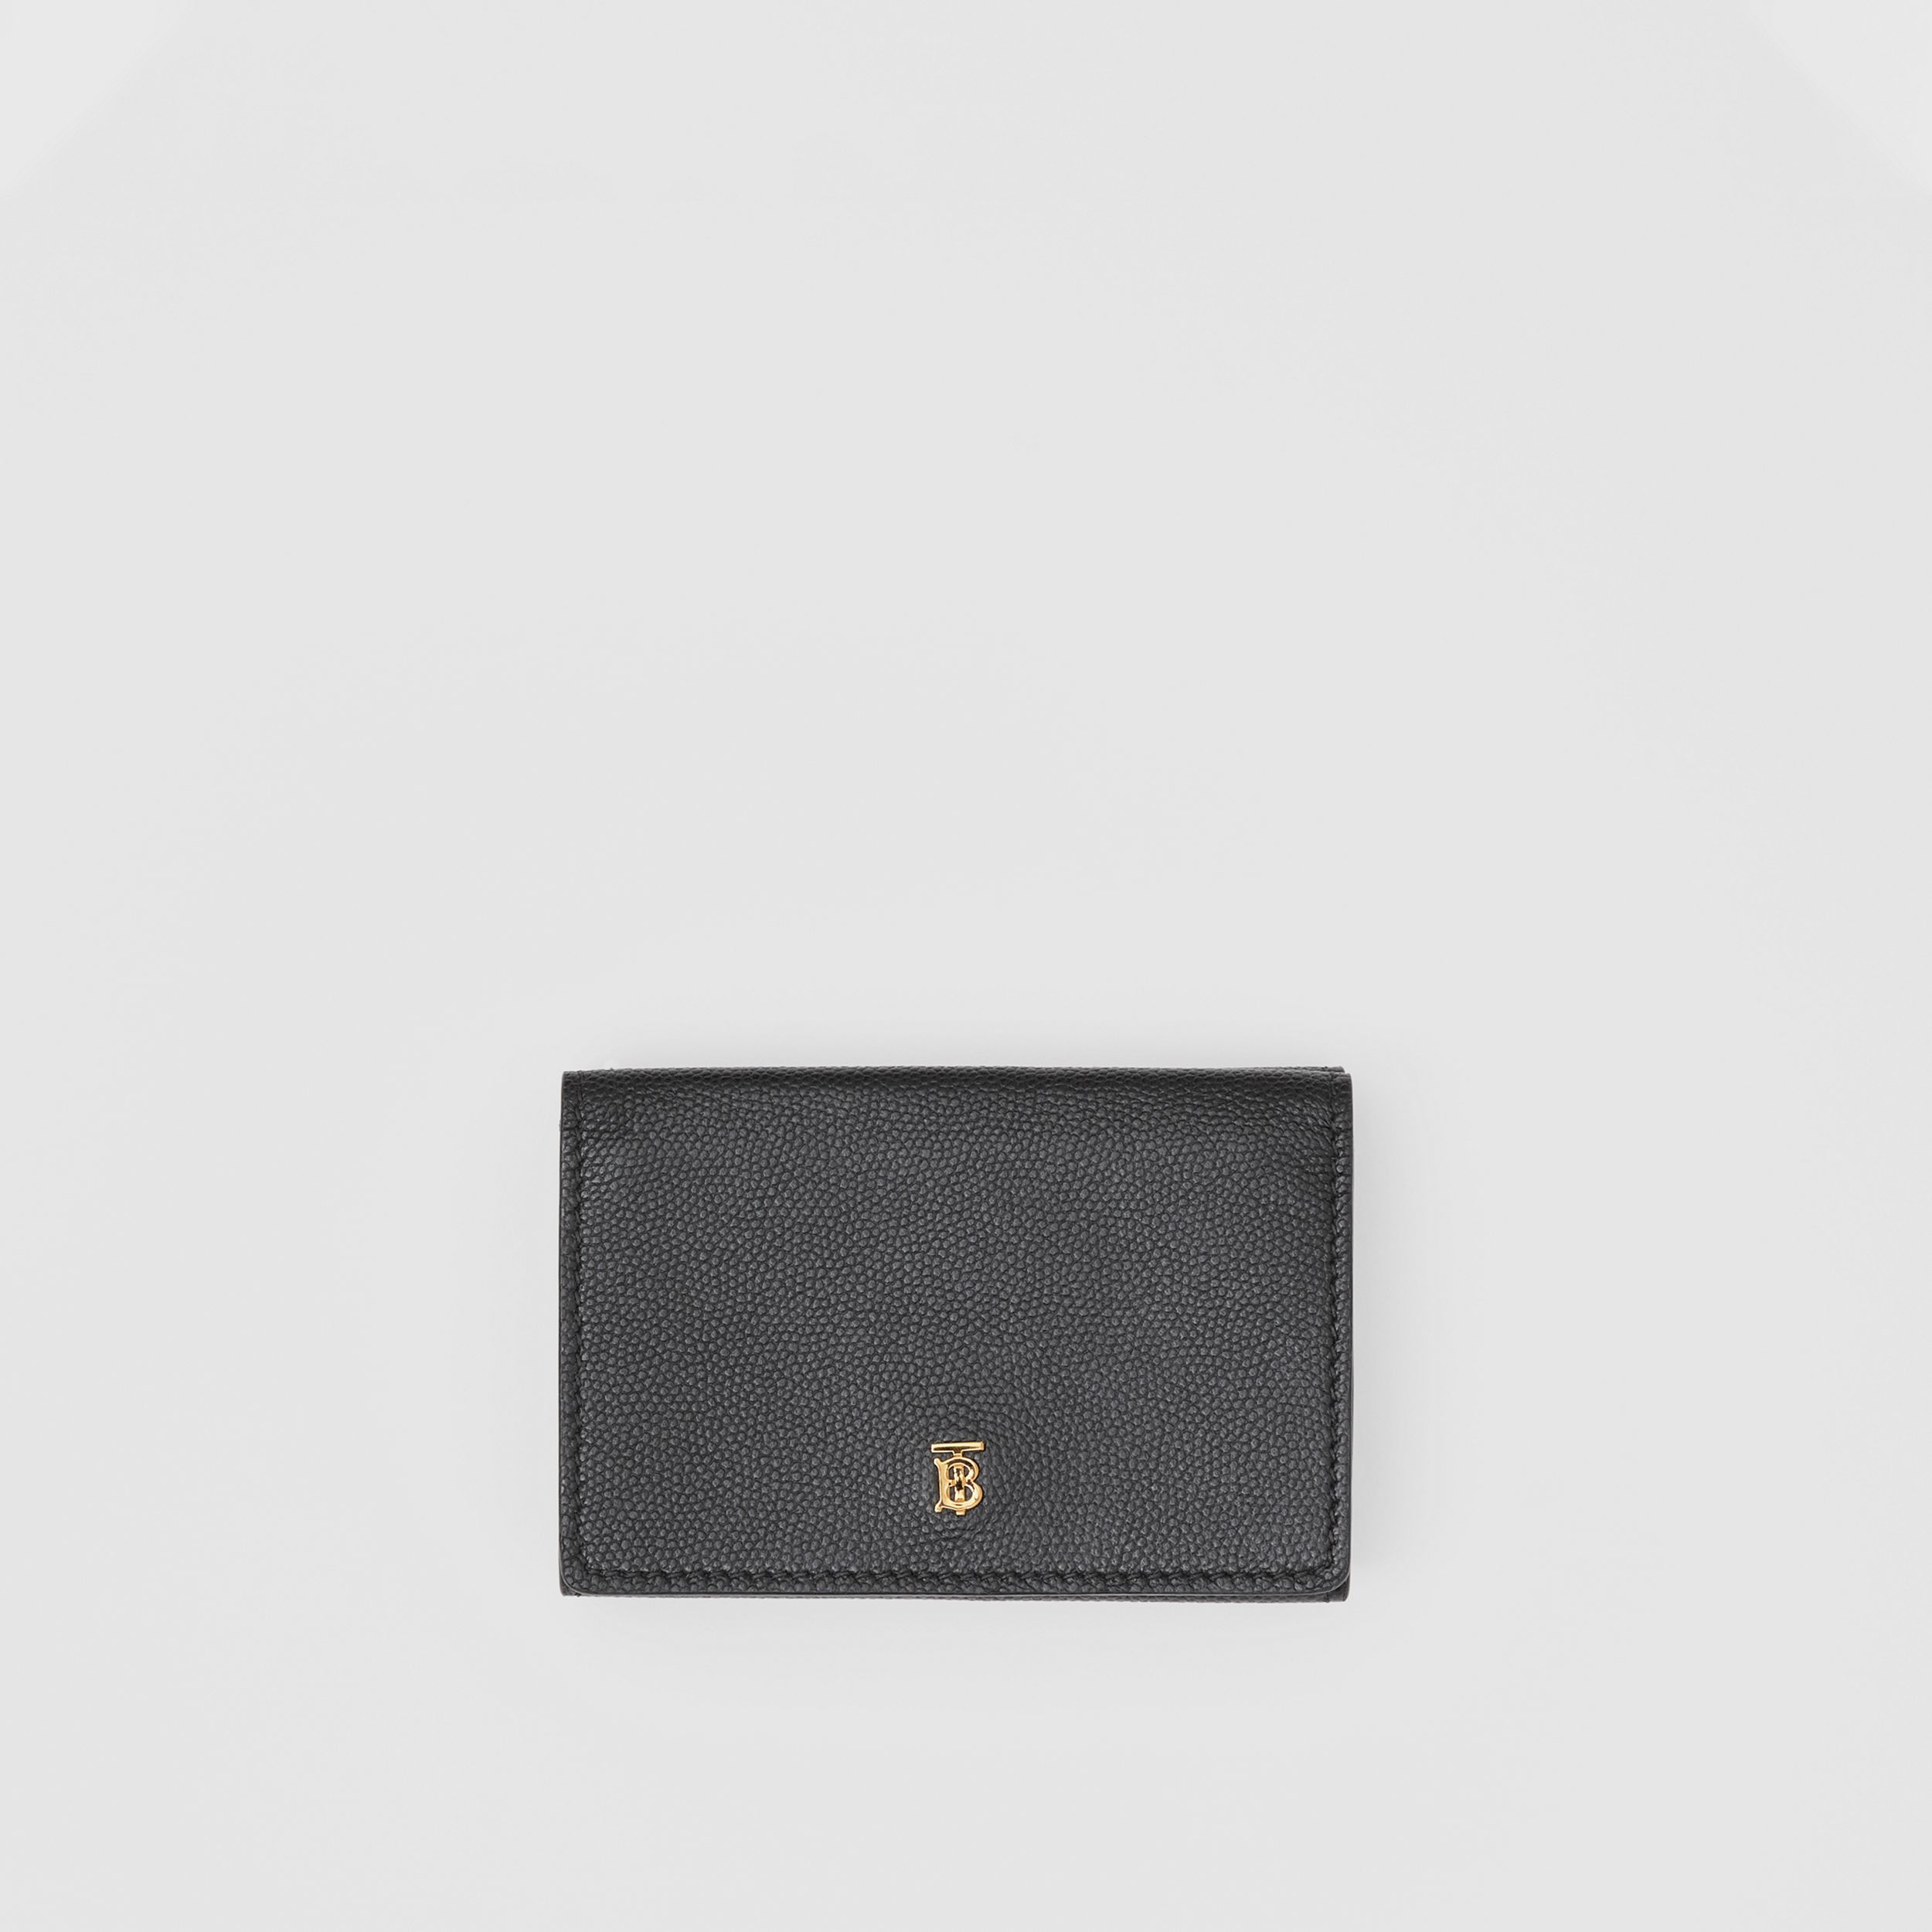 Small Grainy Leather Folding Wallet in Black - Women | Burberry - 1